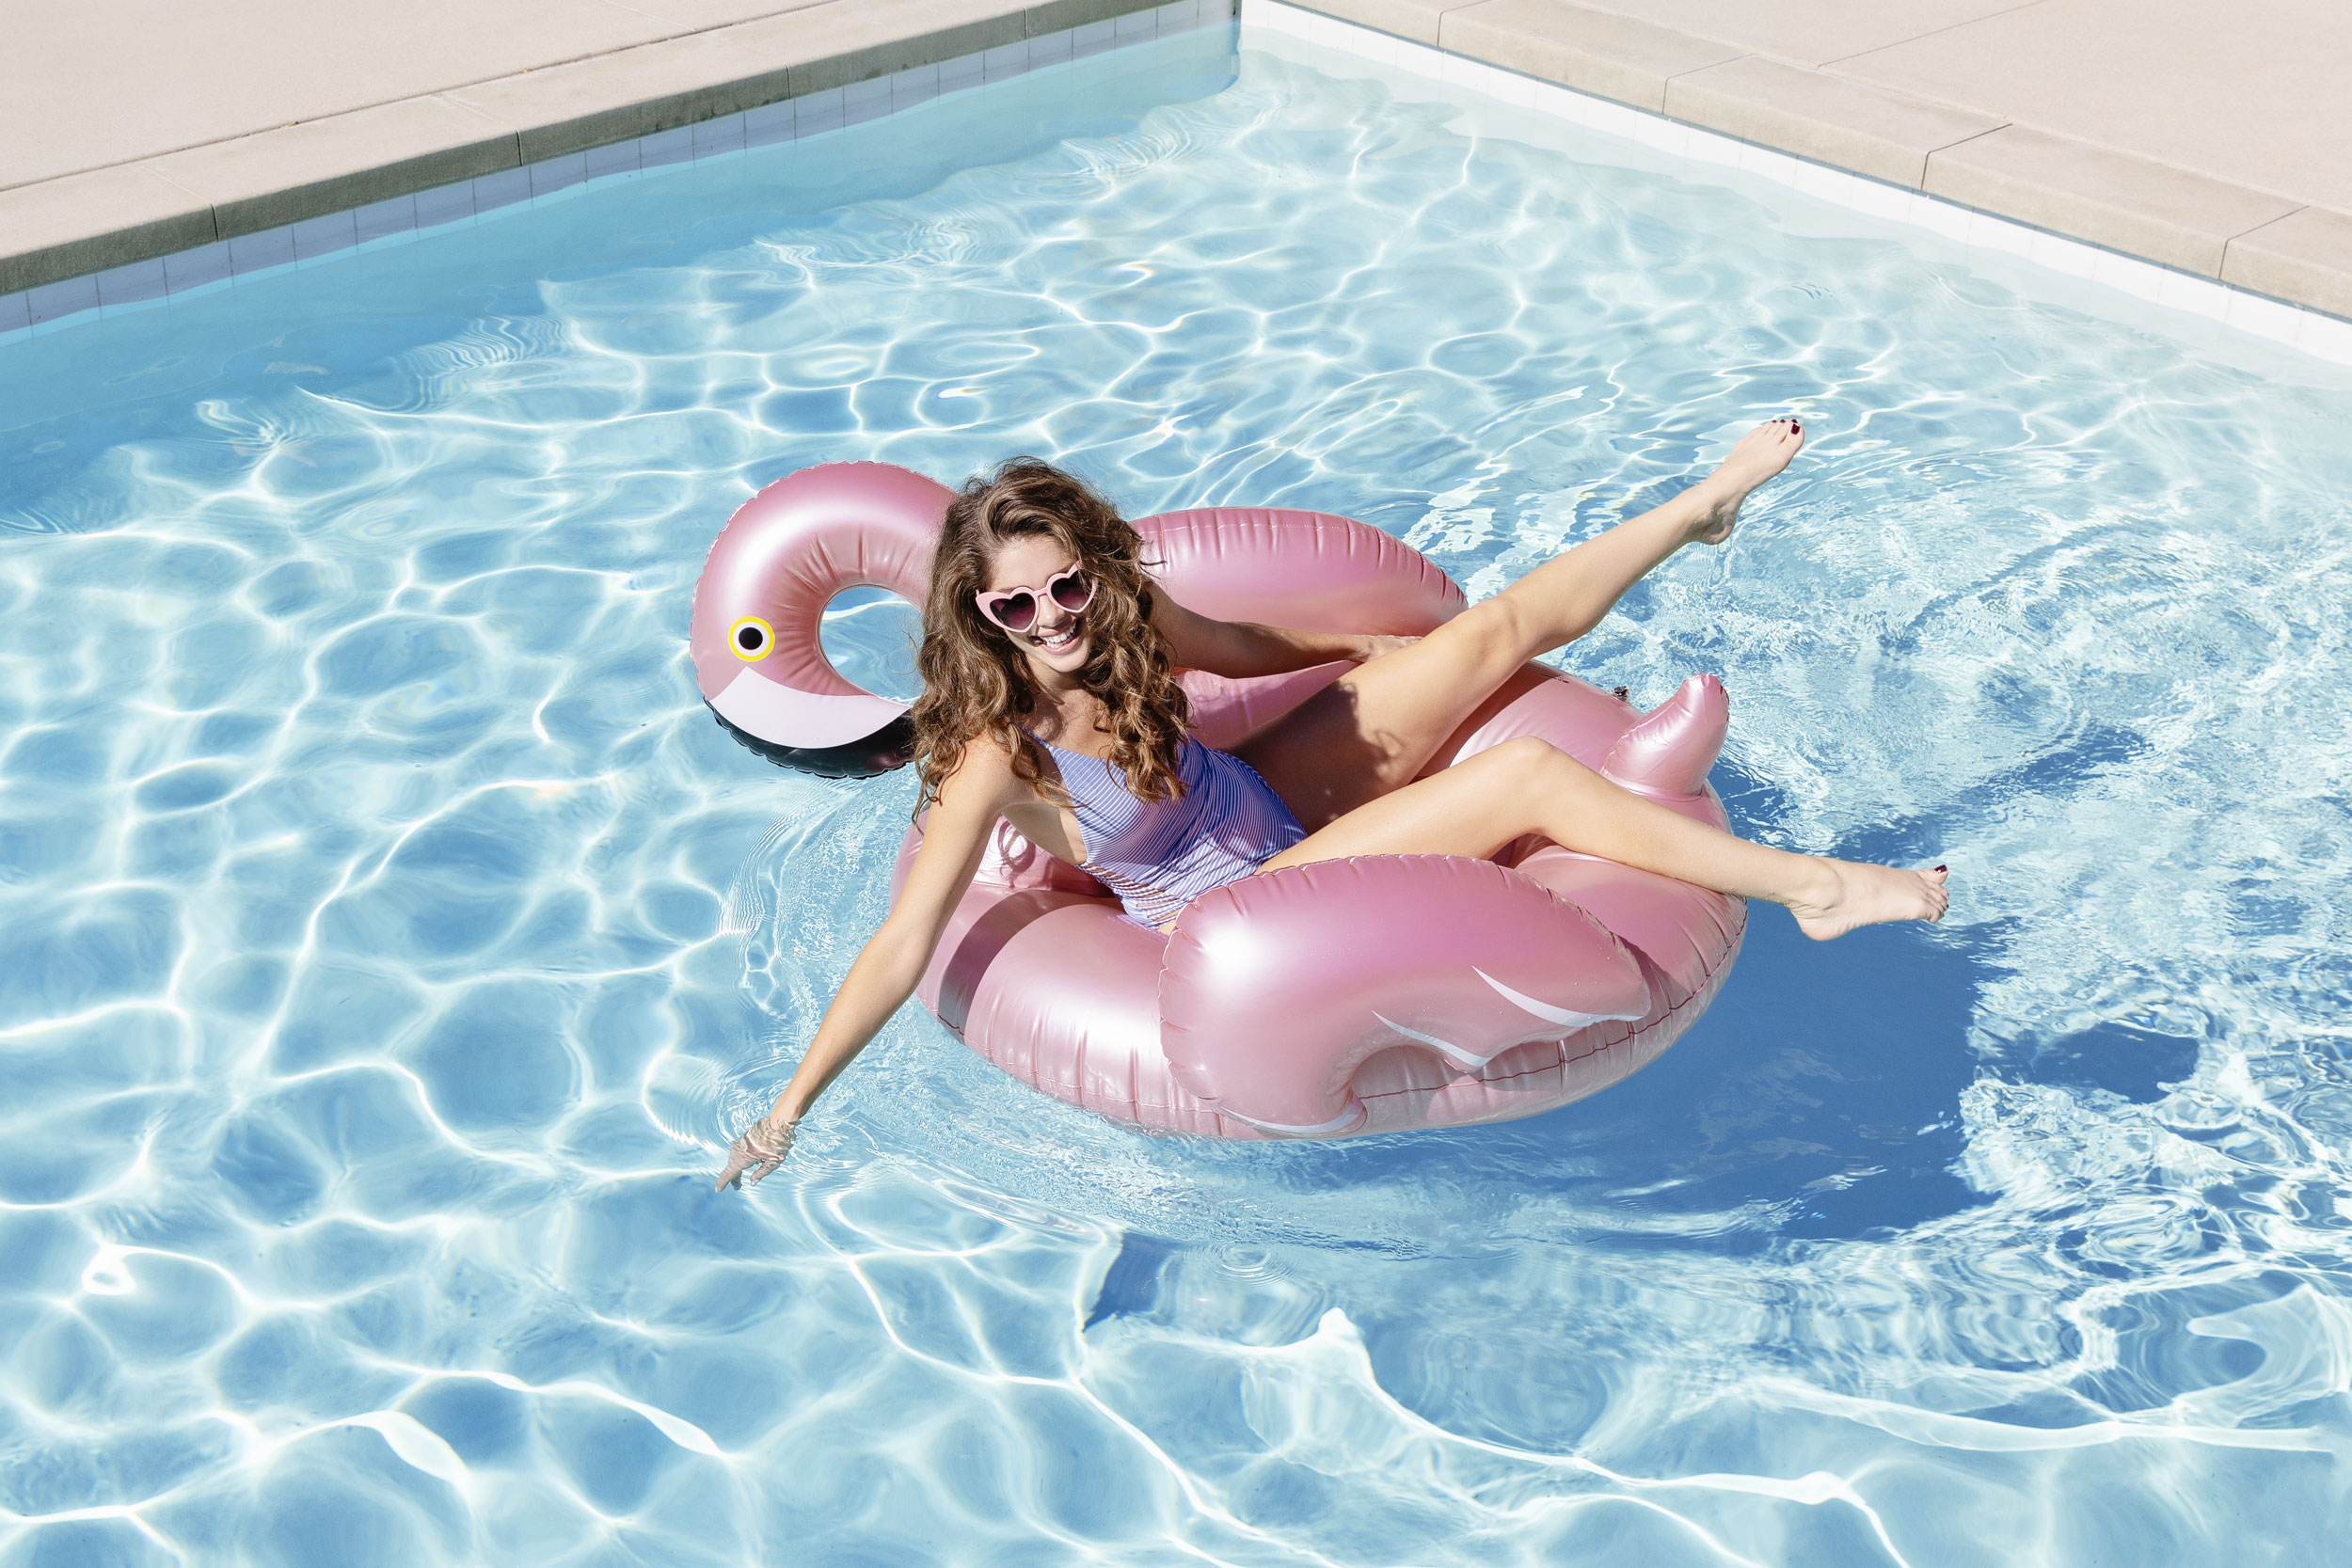 Girl wearing heart sunglasses on a flamingo pool float in a pool